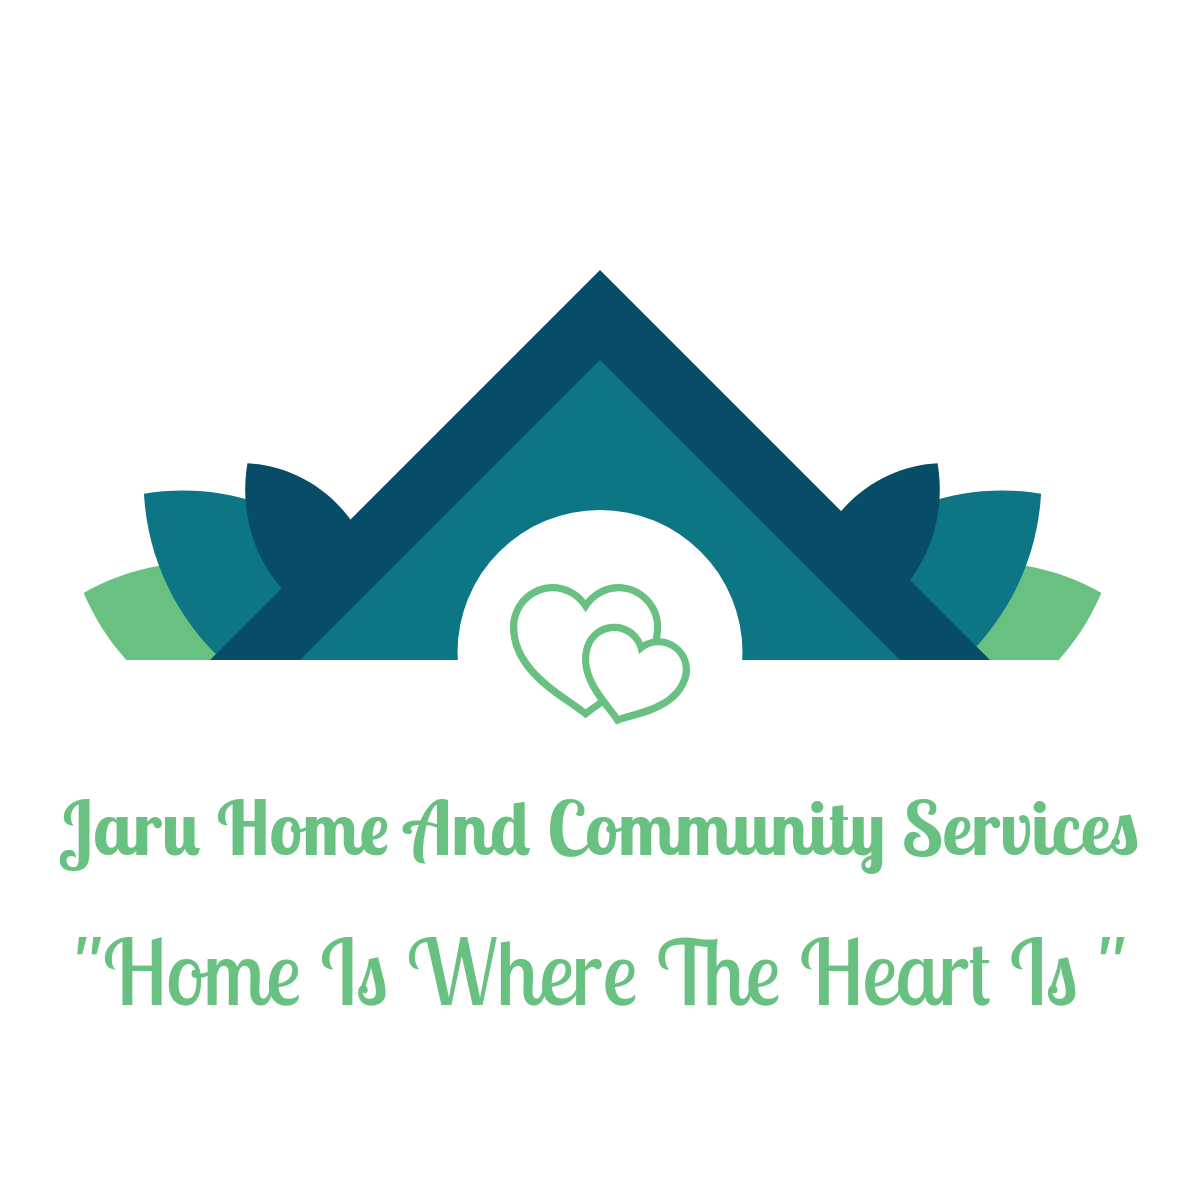 JARU HOME AND COMMUNITY SERVICES